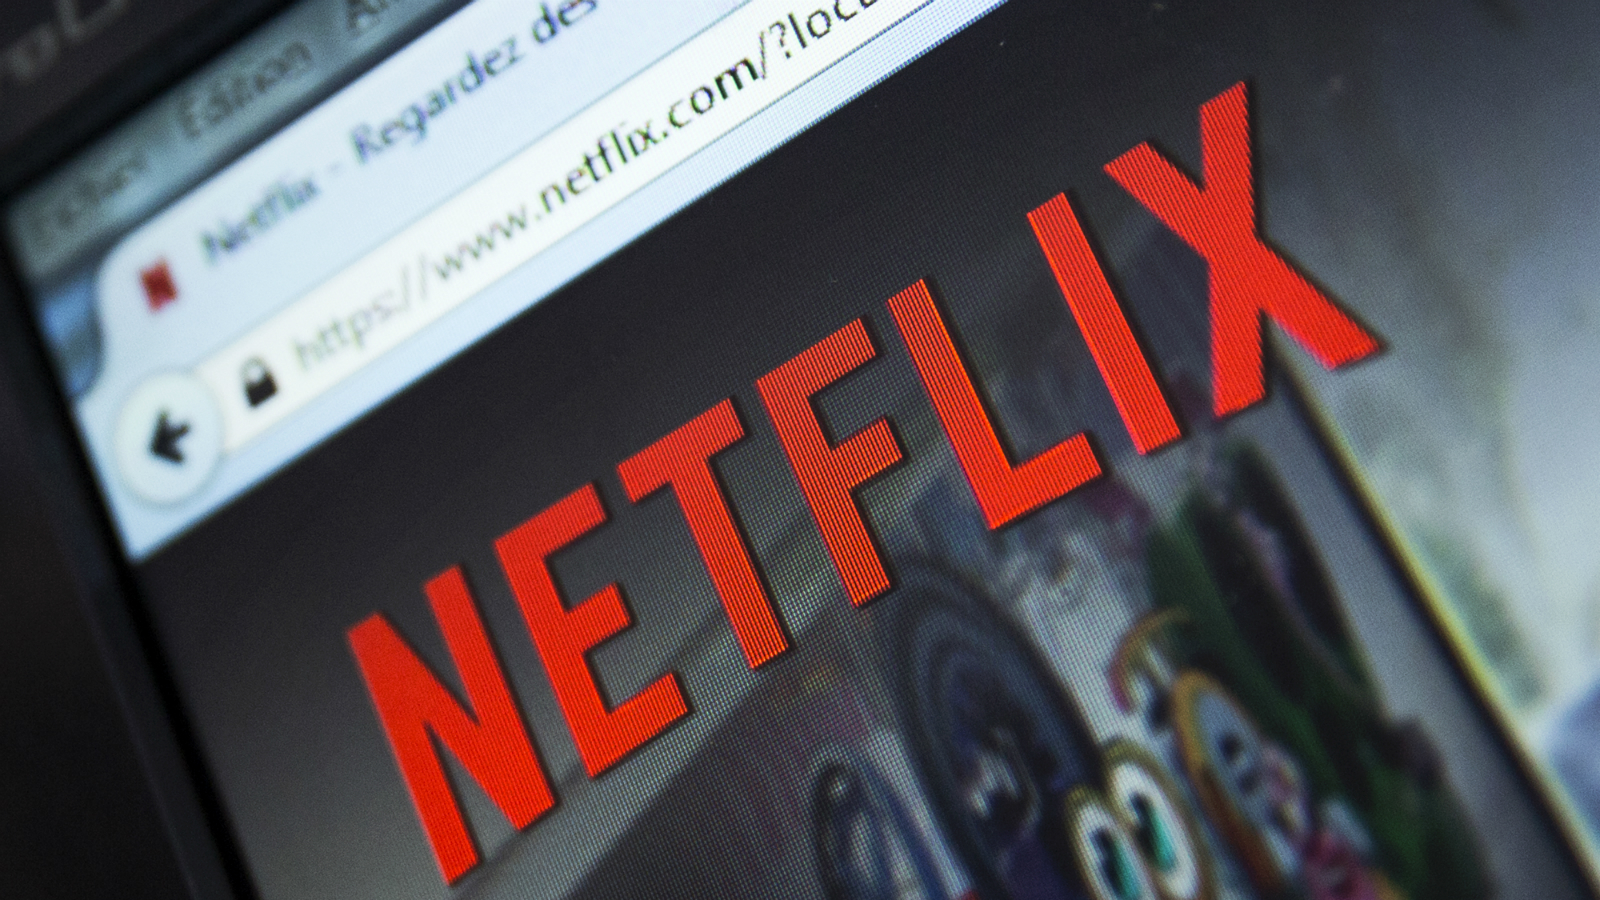 A file picture dated 15 September 214 of the French Netflix webpage displayed on a computer screen in Paris, France. Video streamer Netflix on 06 January 2016 went live around the world, adding 130 new countries to its service and launching what Netflix chief executive Reed Hastings called a 'global internet TV network.' The announcement more than triples the number of countries where Netflix is available, from 60 to 190, including the potentially huge markets of India, Russia and South Korea.